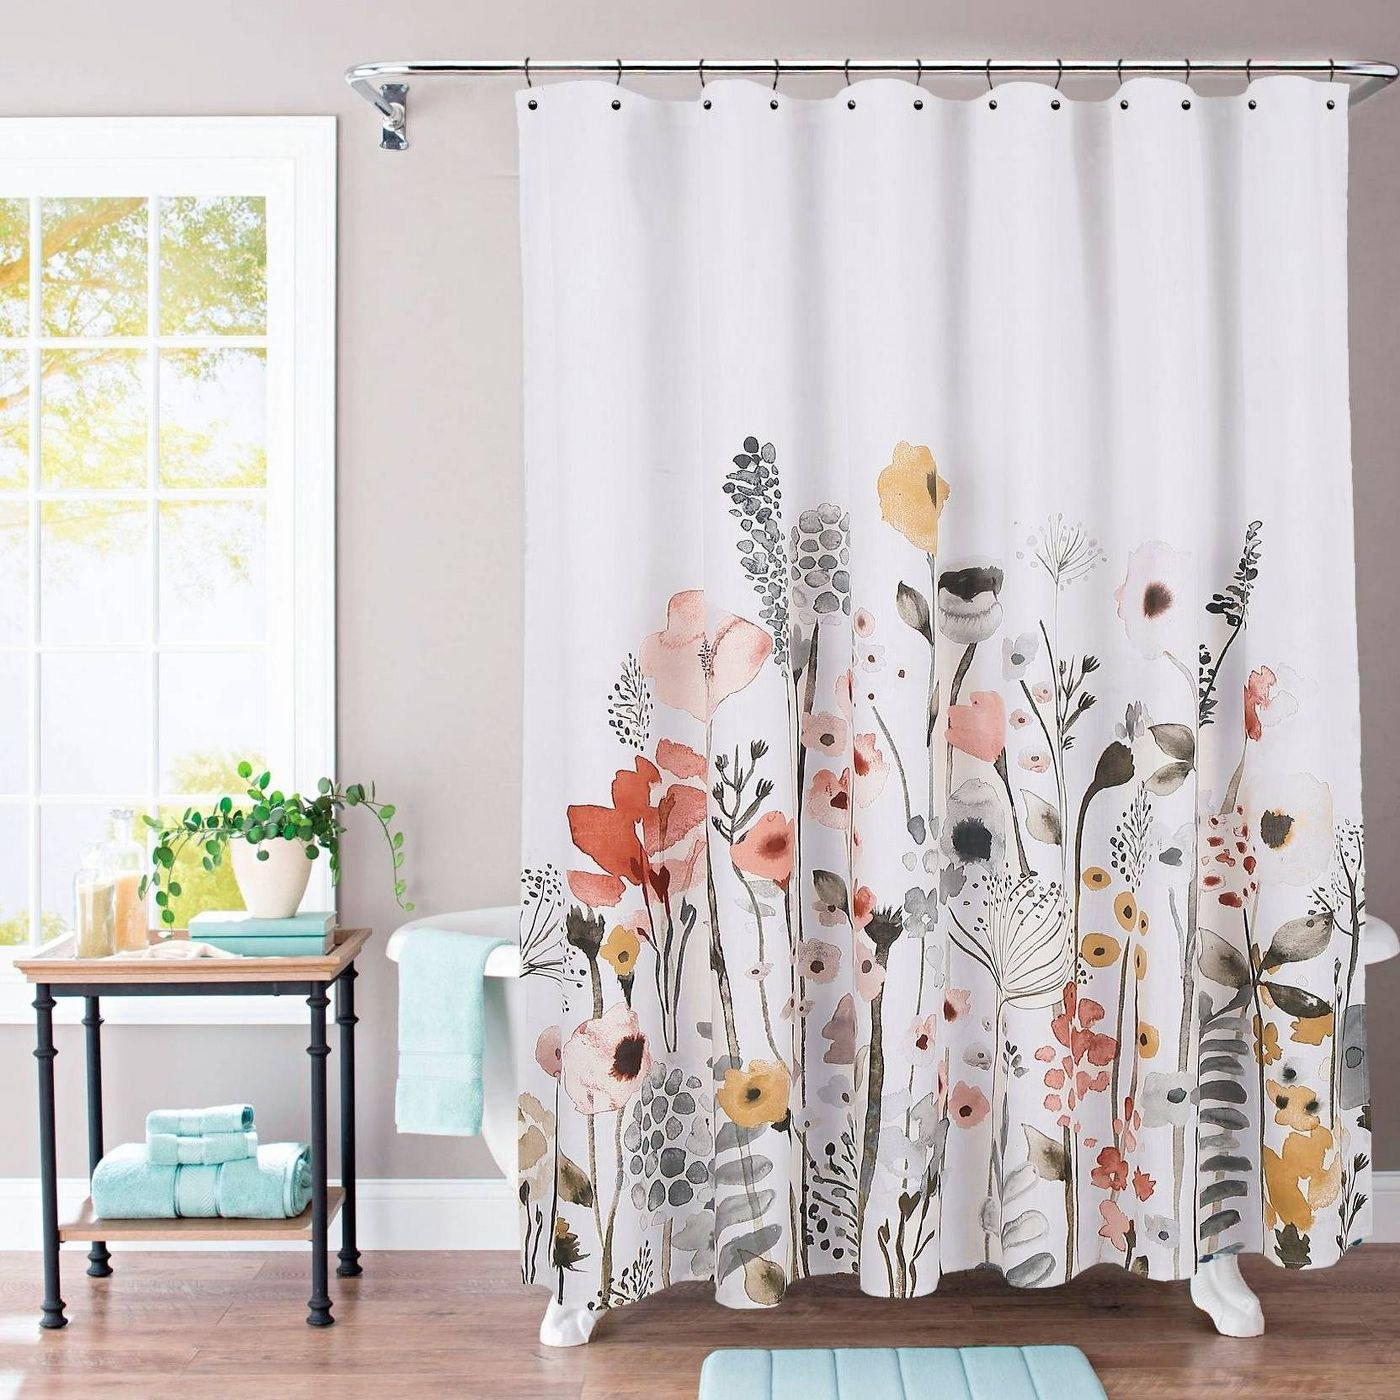 A multi-colored flower shower curtain in a home